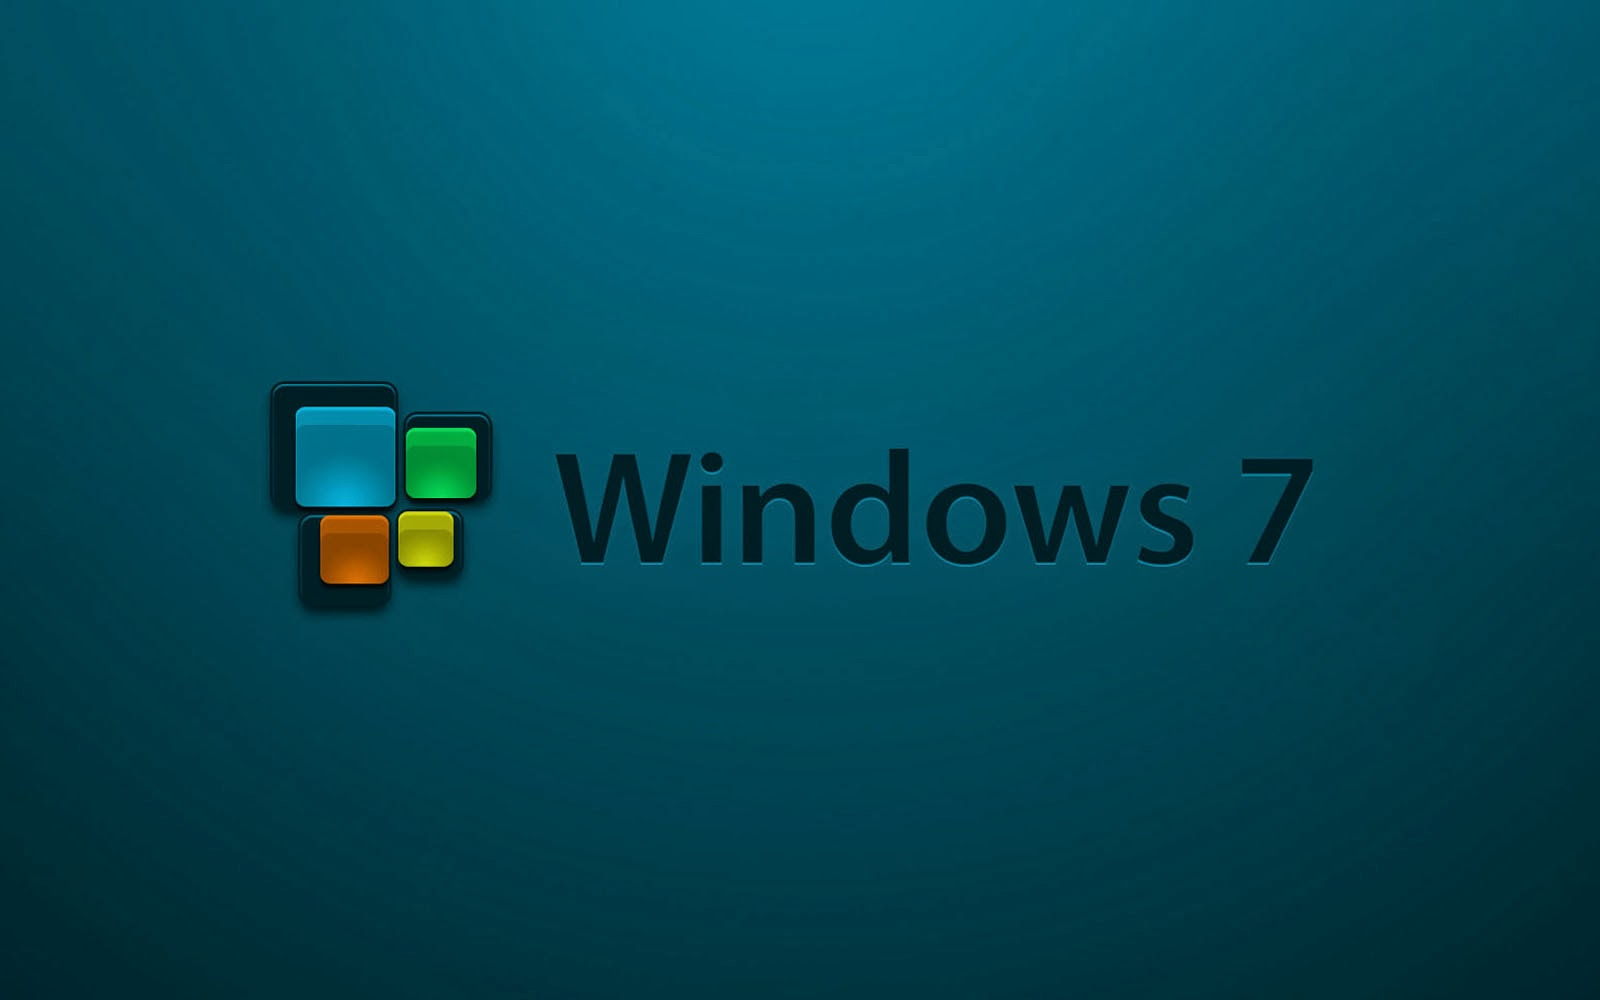 wall paper windows 7 - photo #15